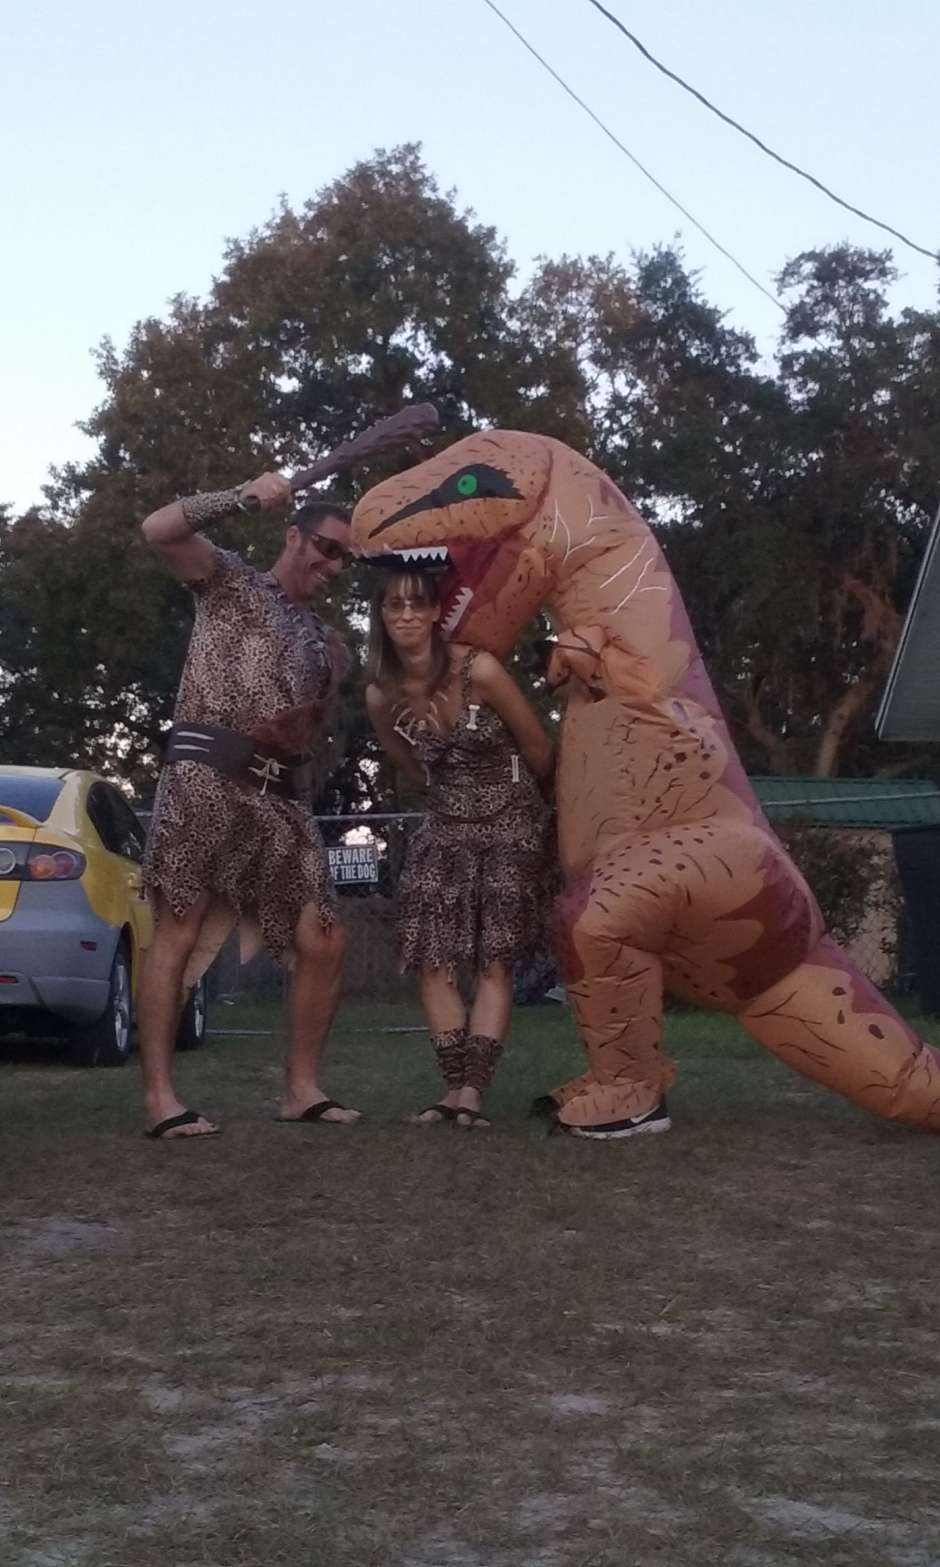 blow up dinosaur and cavemen